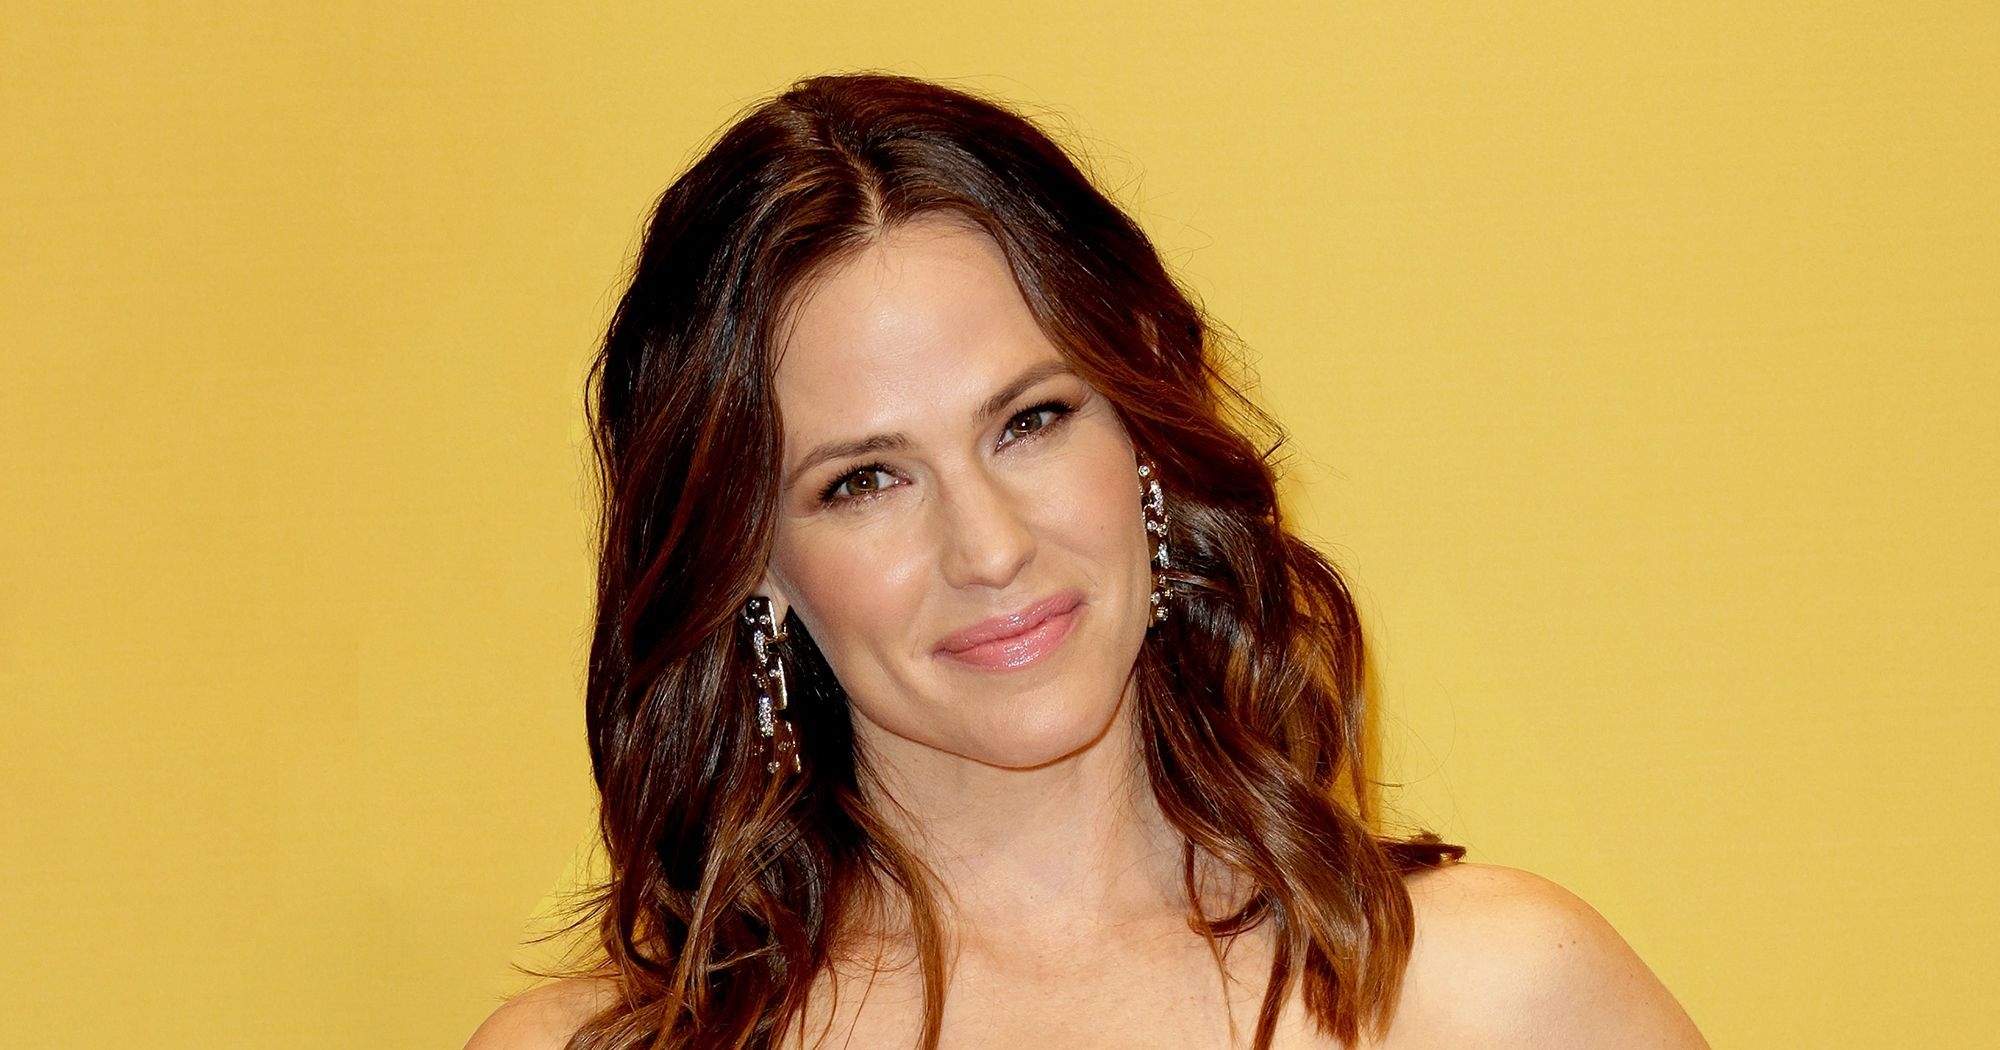 Could A Jen Garner GIF Help You Land A Job?  http://www.refinery29.com/2017/04/148137/new-rules-of-work-excerpt-career-advice?utm_source=feed&utm_medium=rss